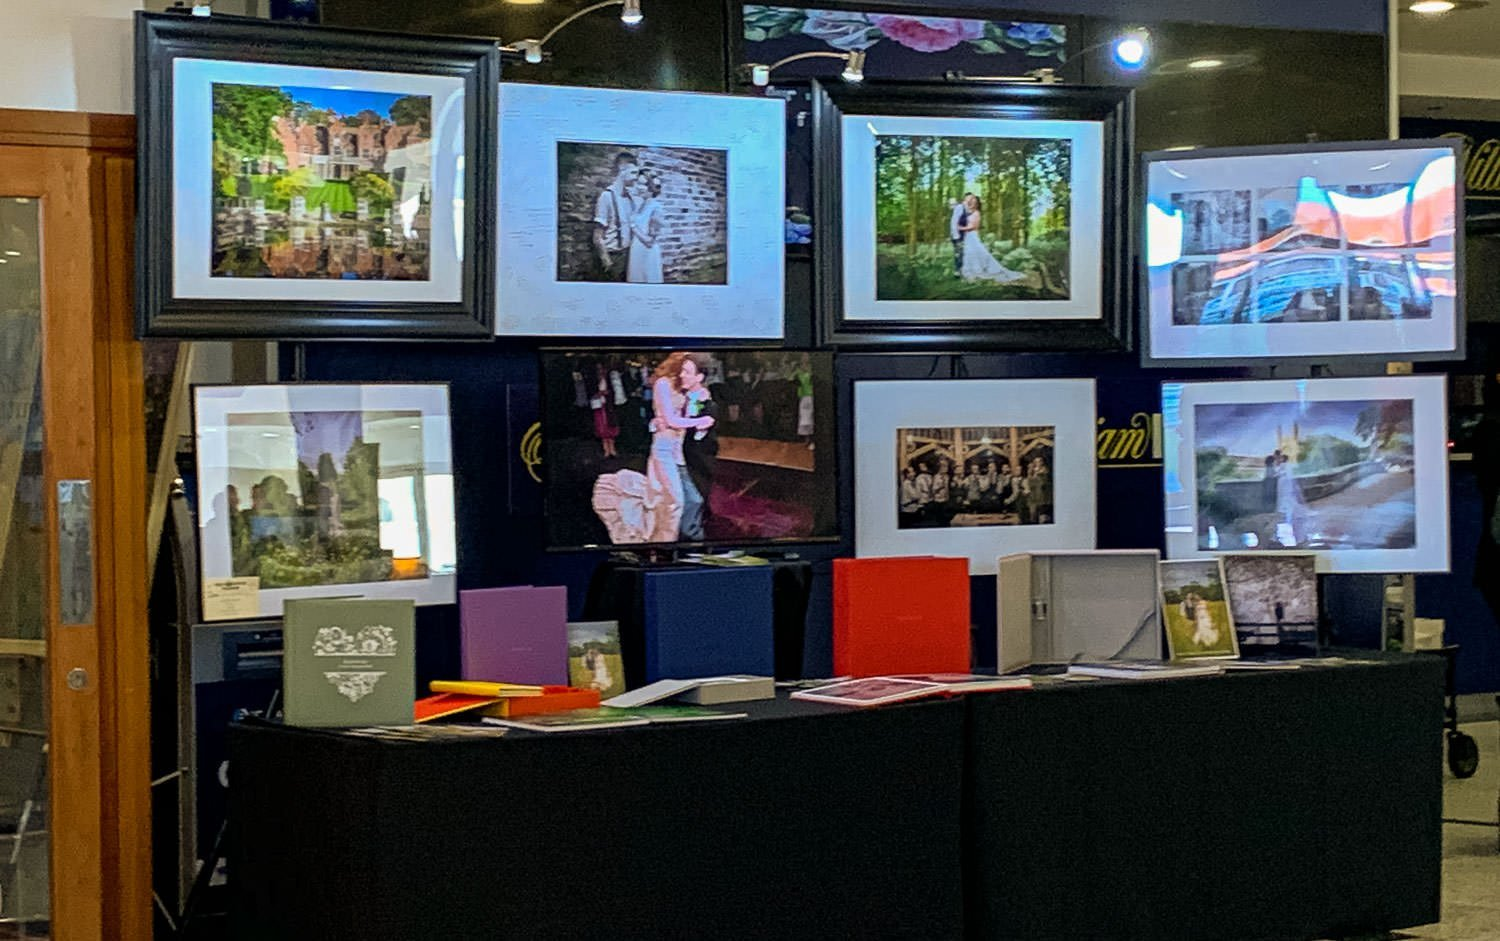 Showing an exhibit at a cambridge wedding fair, showing our wedding photography exhibit.